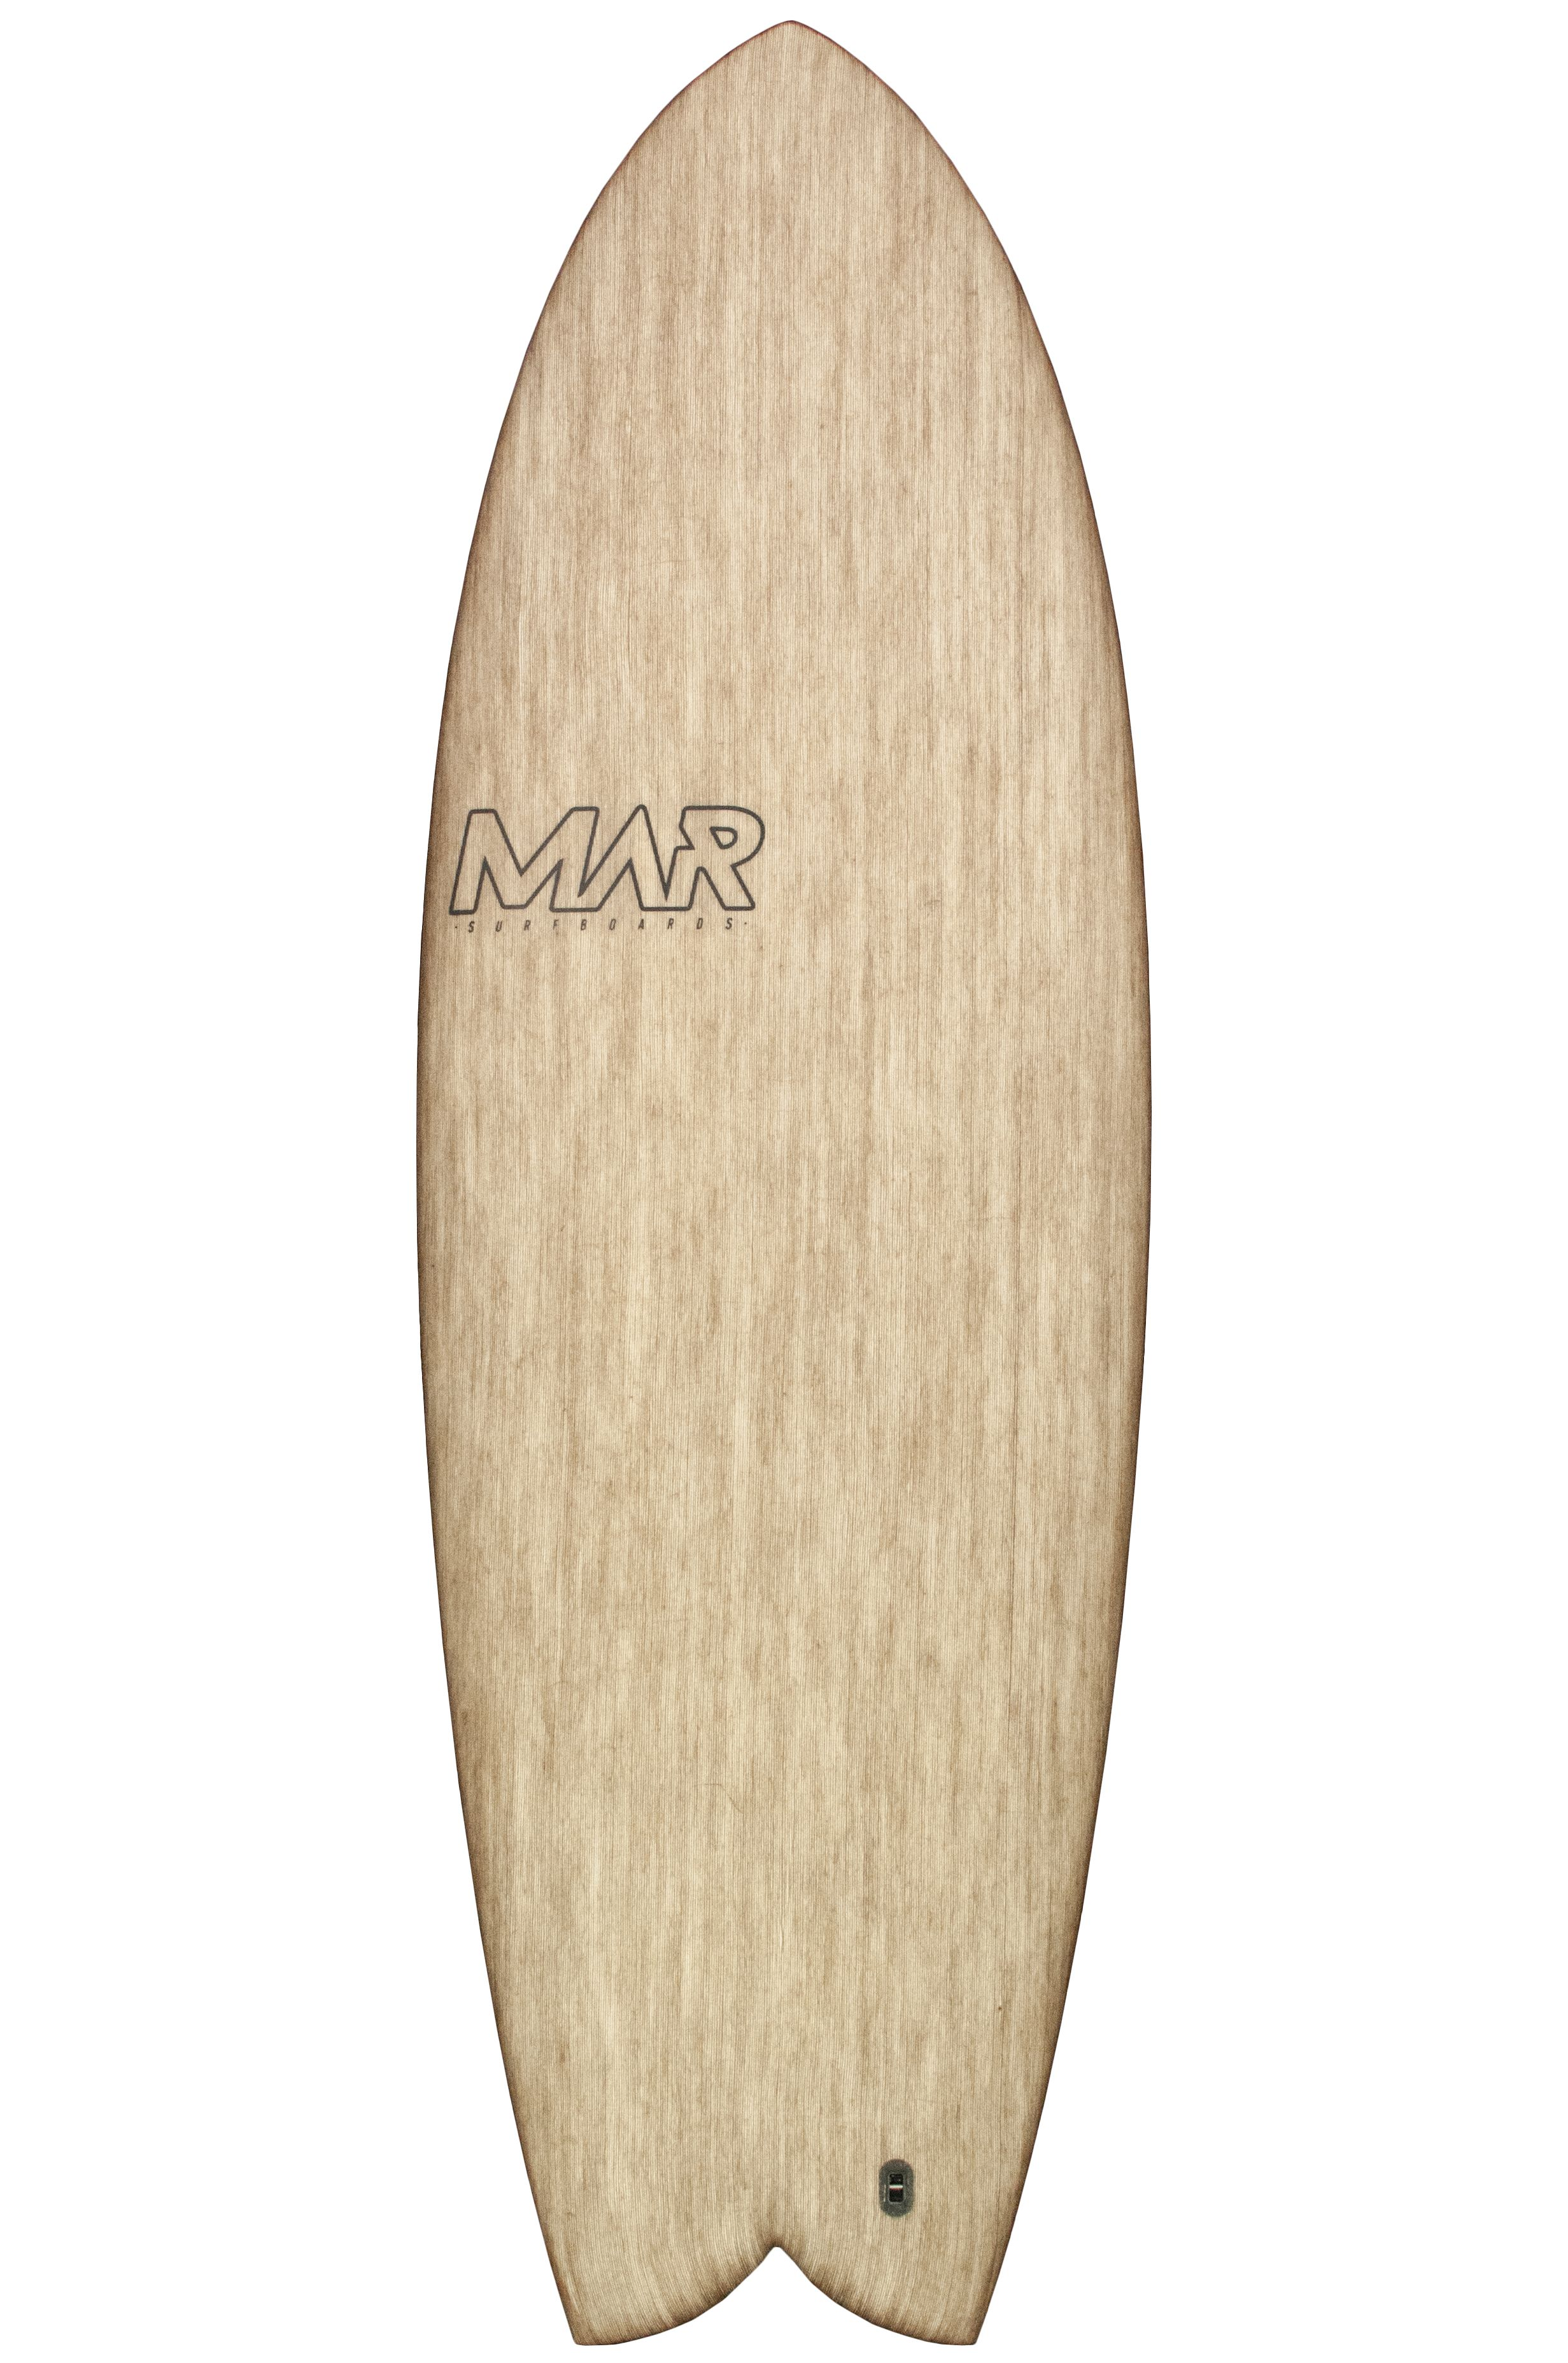 Mar Surf Board 5'8 THE 2 Swallow Tail - Color FCS II Twin Tab 5ft8